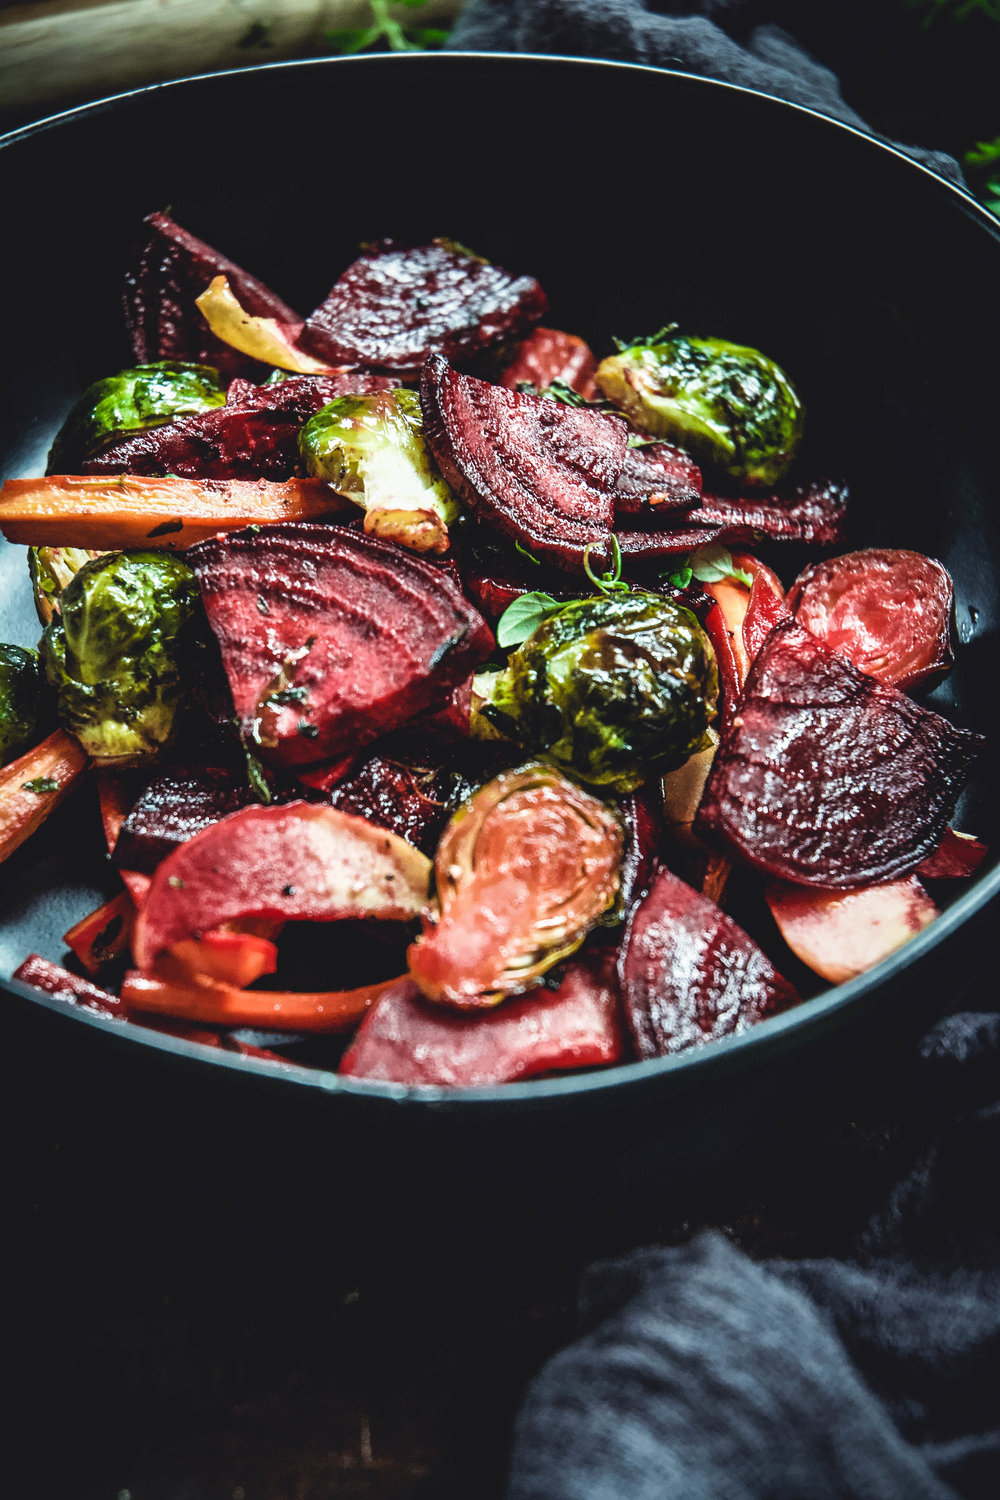 roasted vegetables in bowl